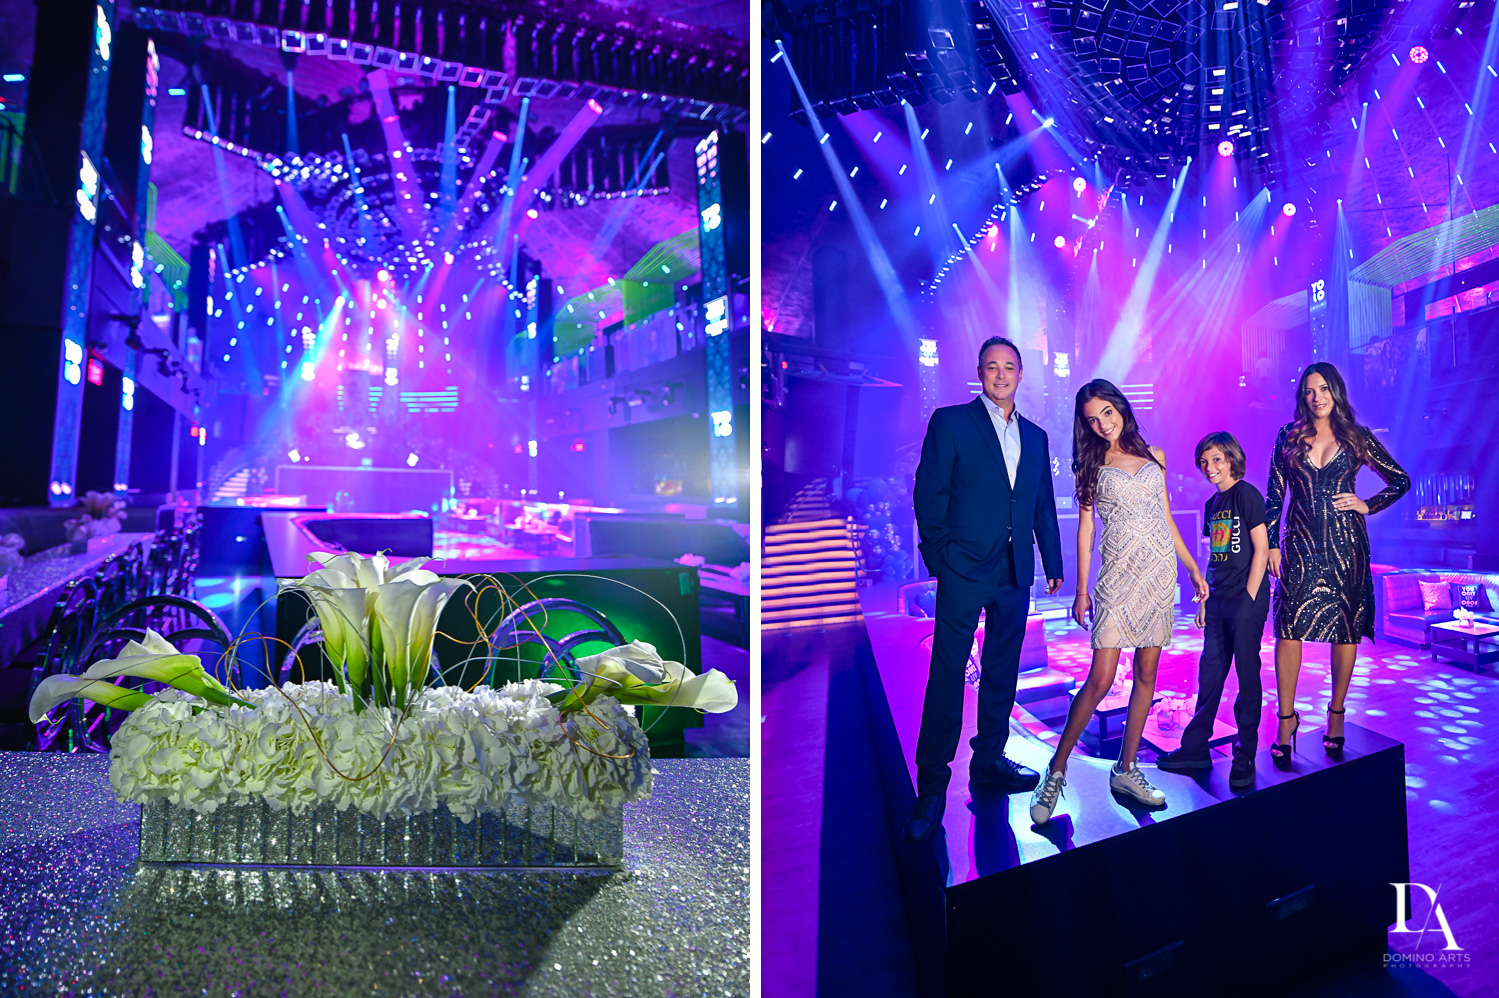 decor and portraits at Nightclub Bat Mitzvah at LIV in Fontainebleau Miami by Domino Arts Photography